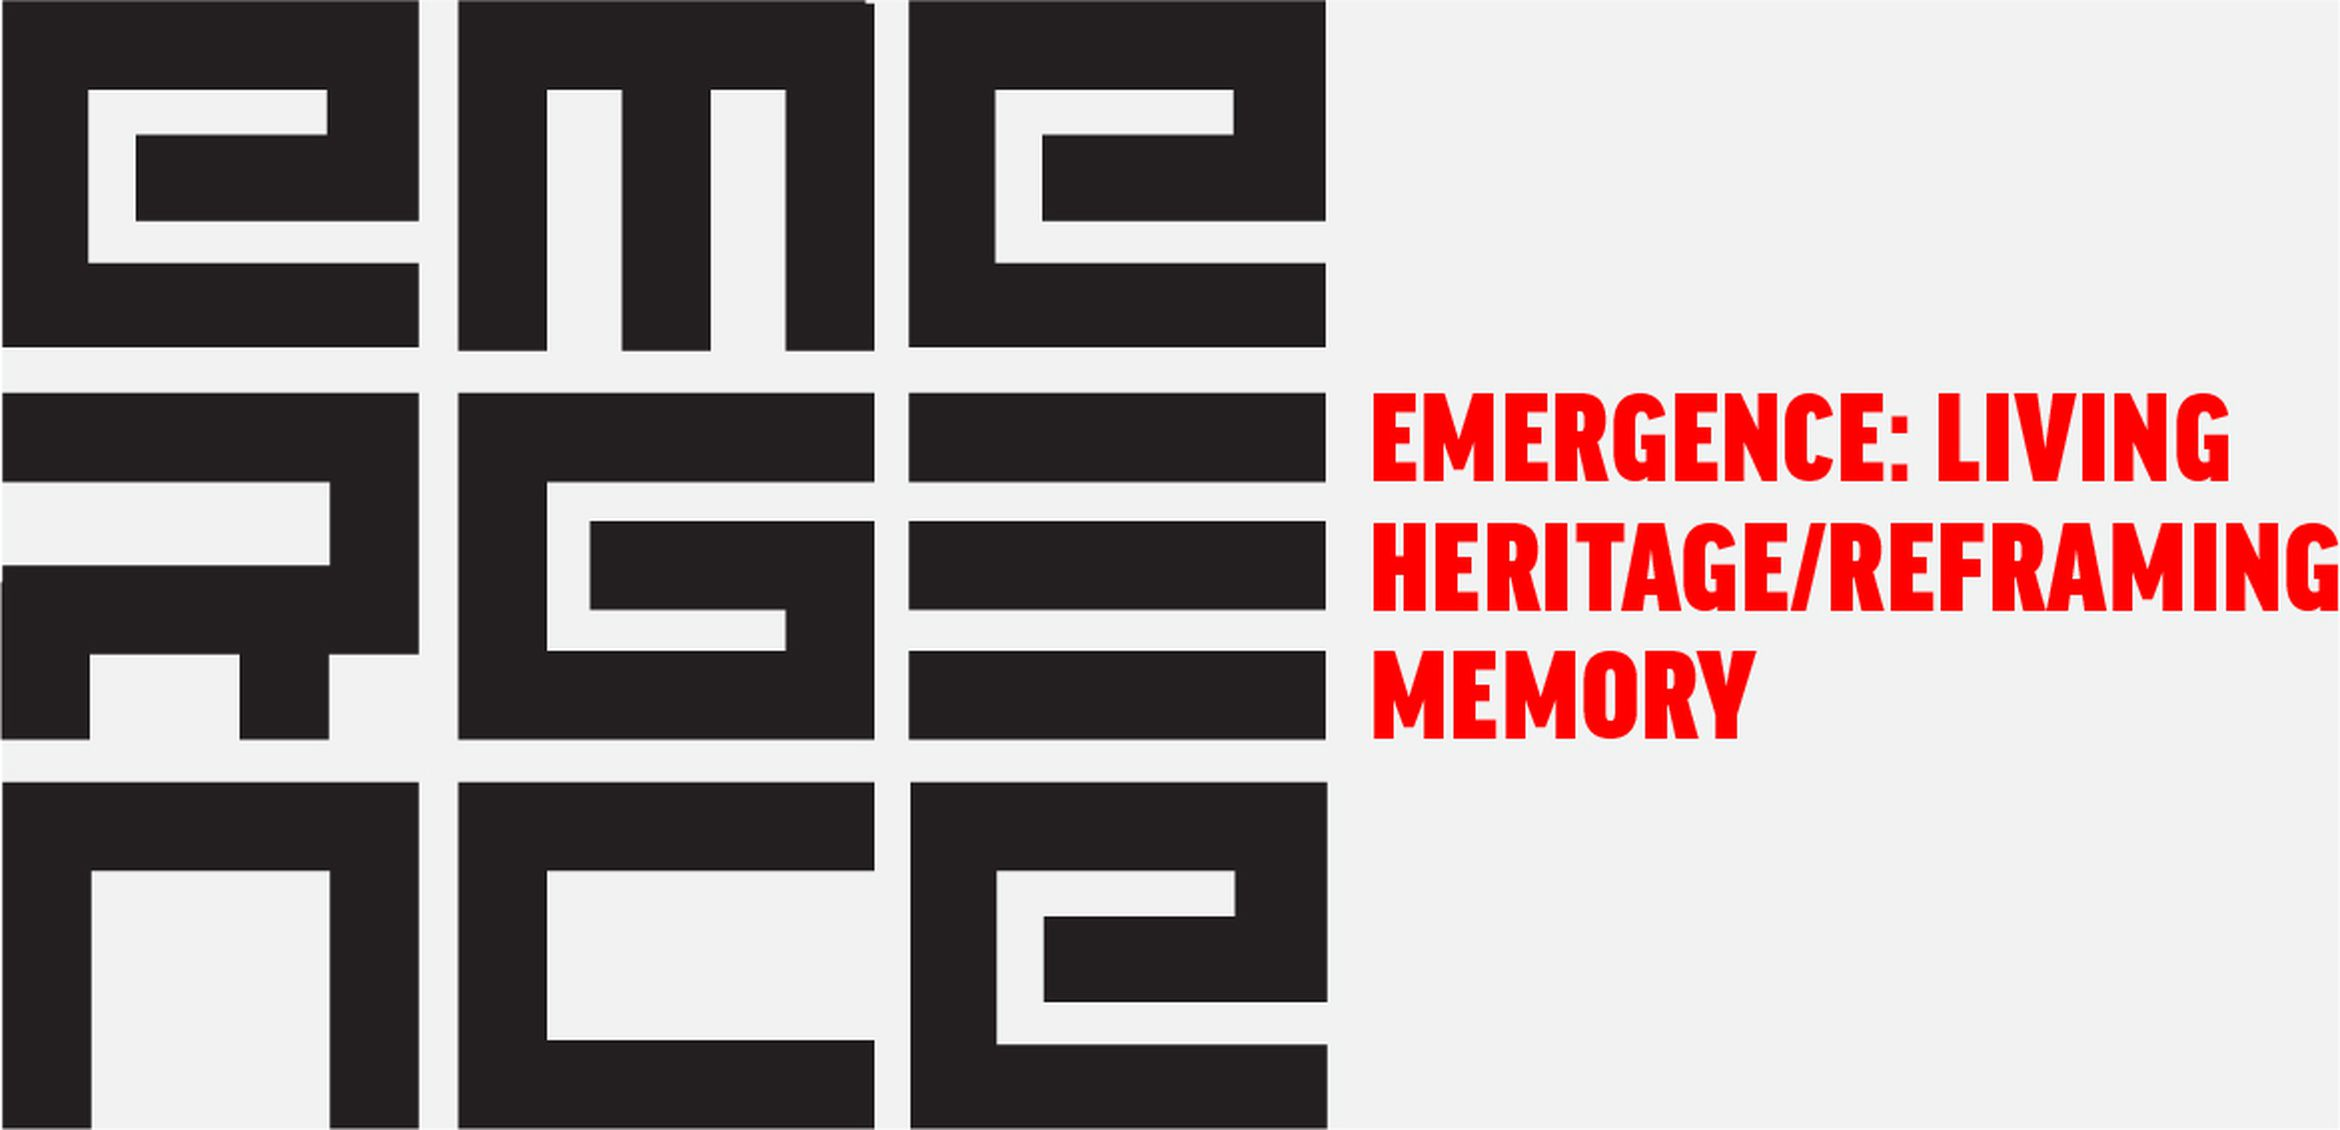 EMERGENCE: Living Heritage / Reframing Memory